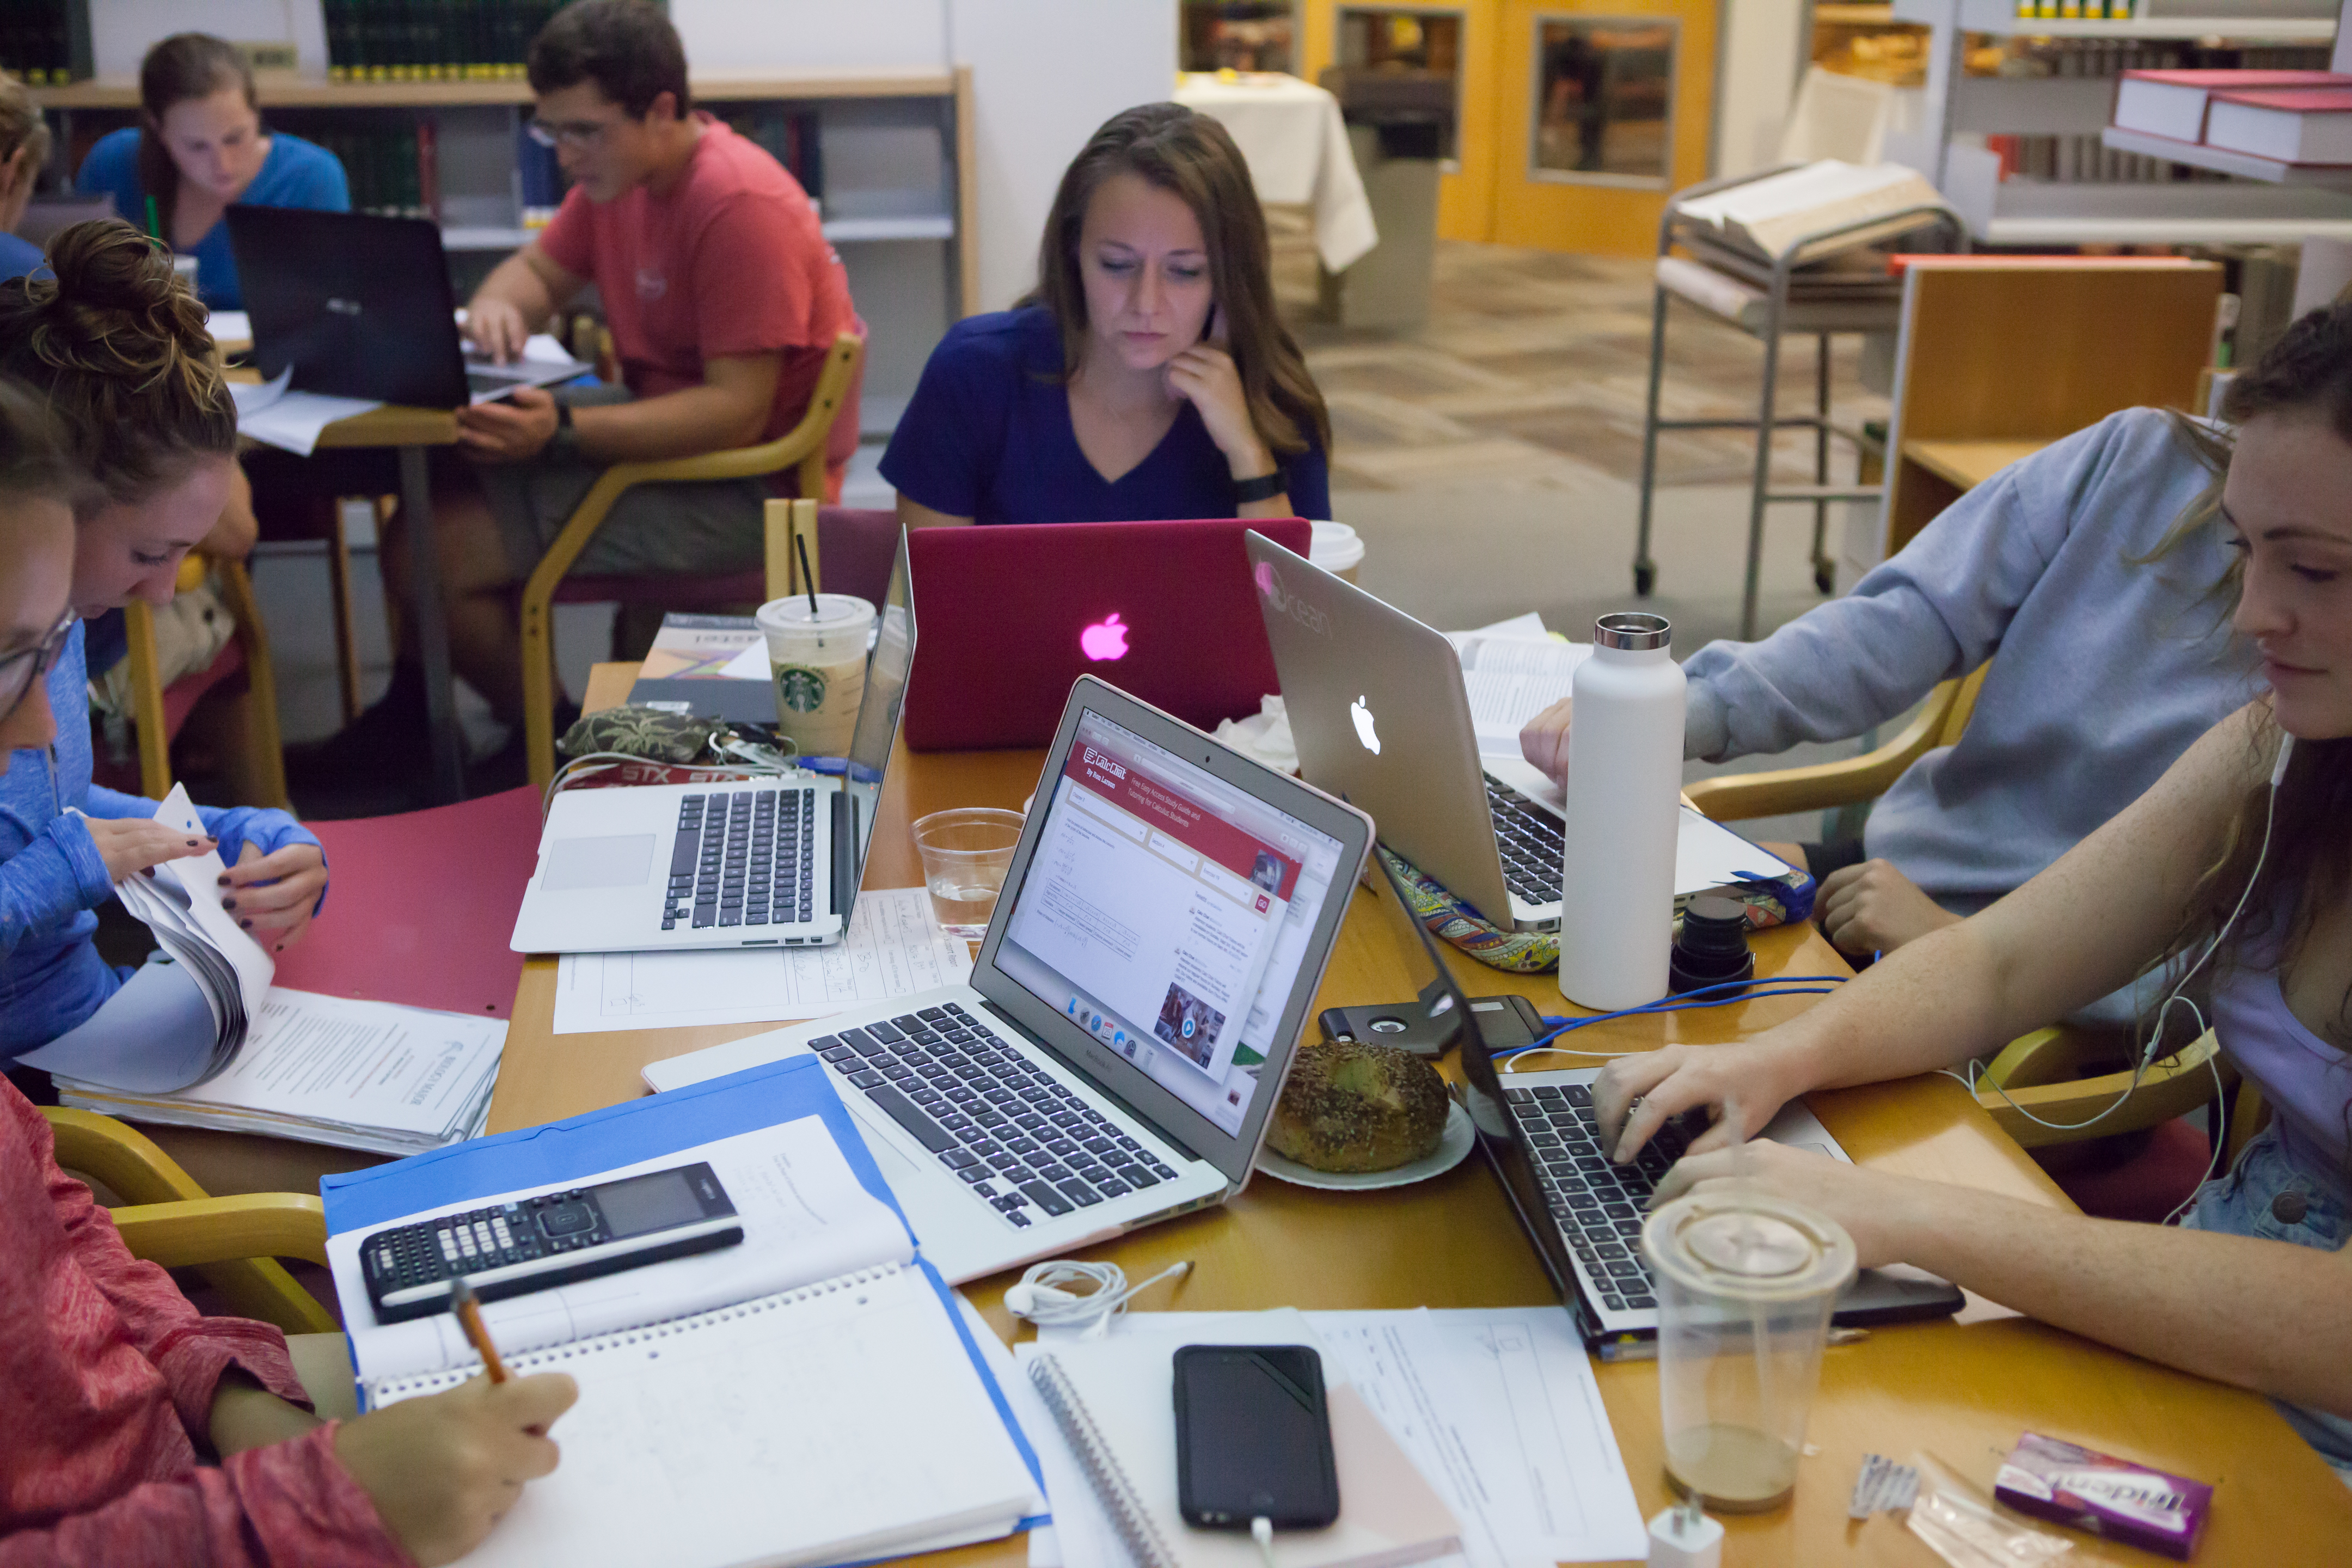 Bryn Athyn College students working on laptops in library